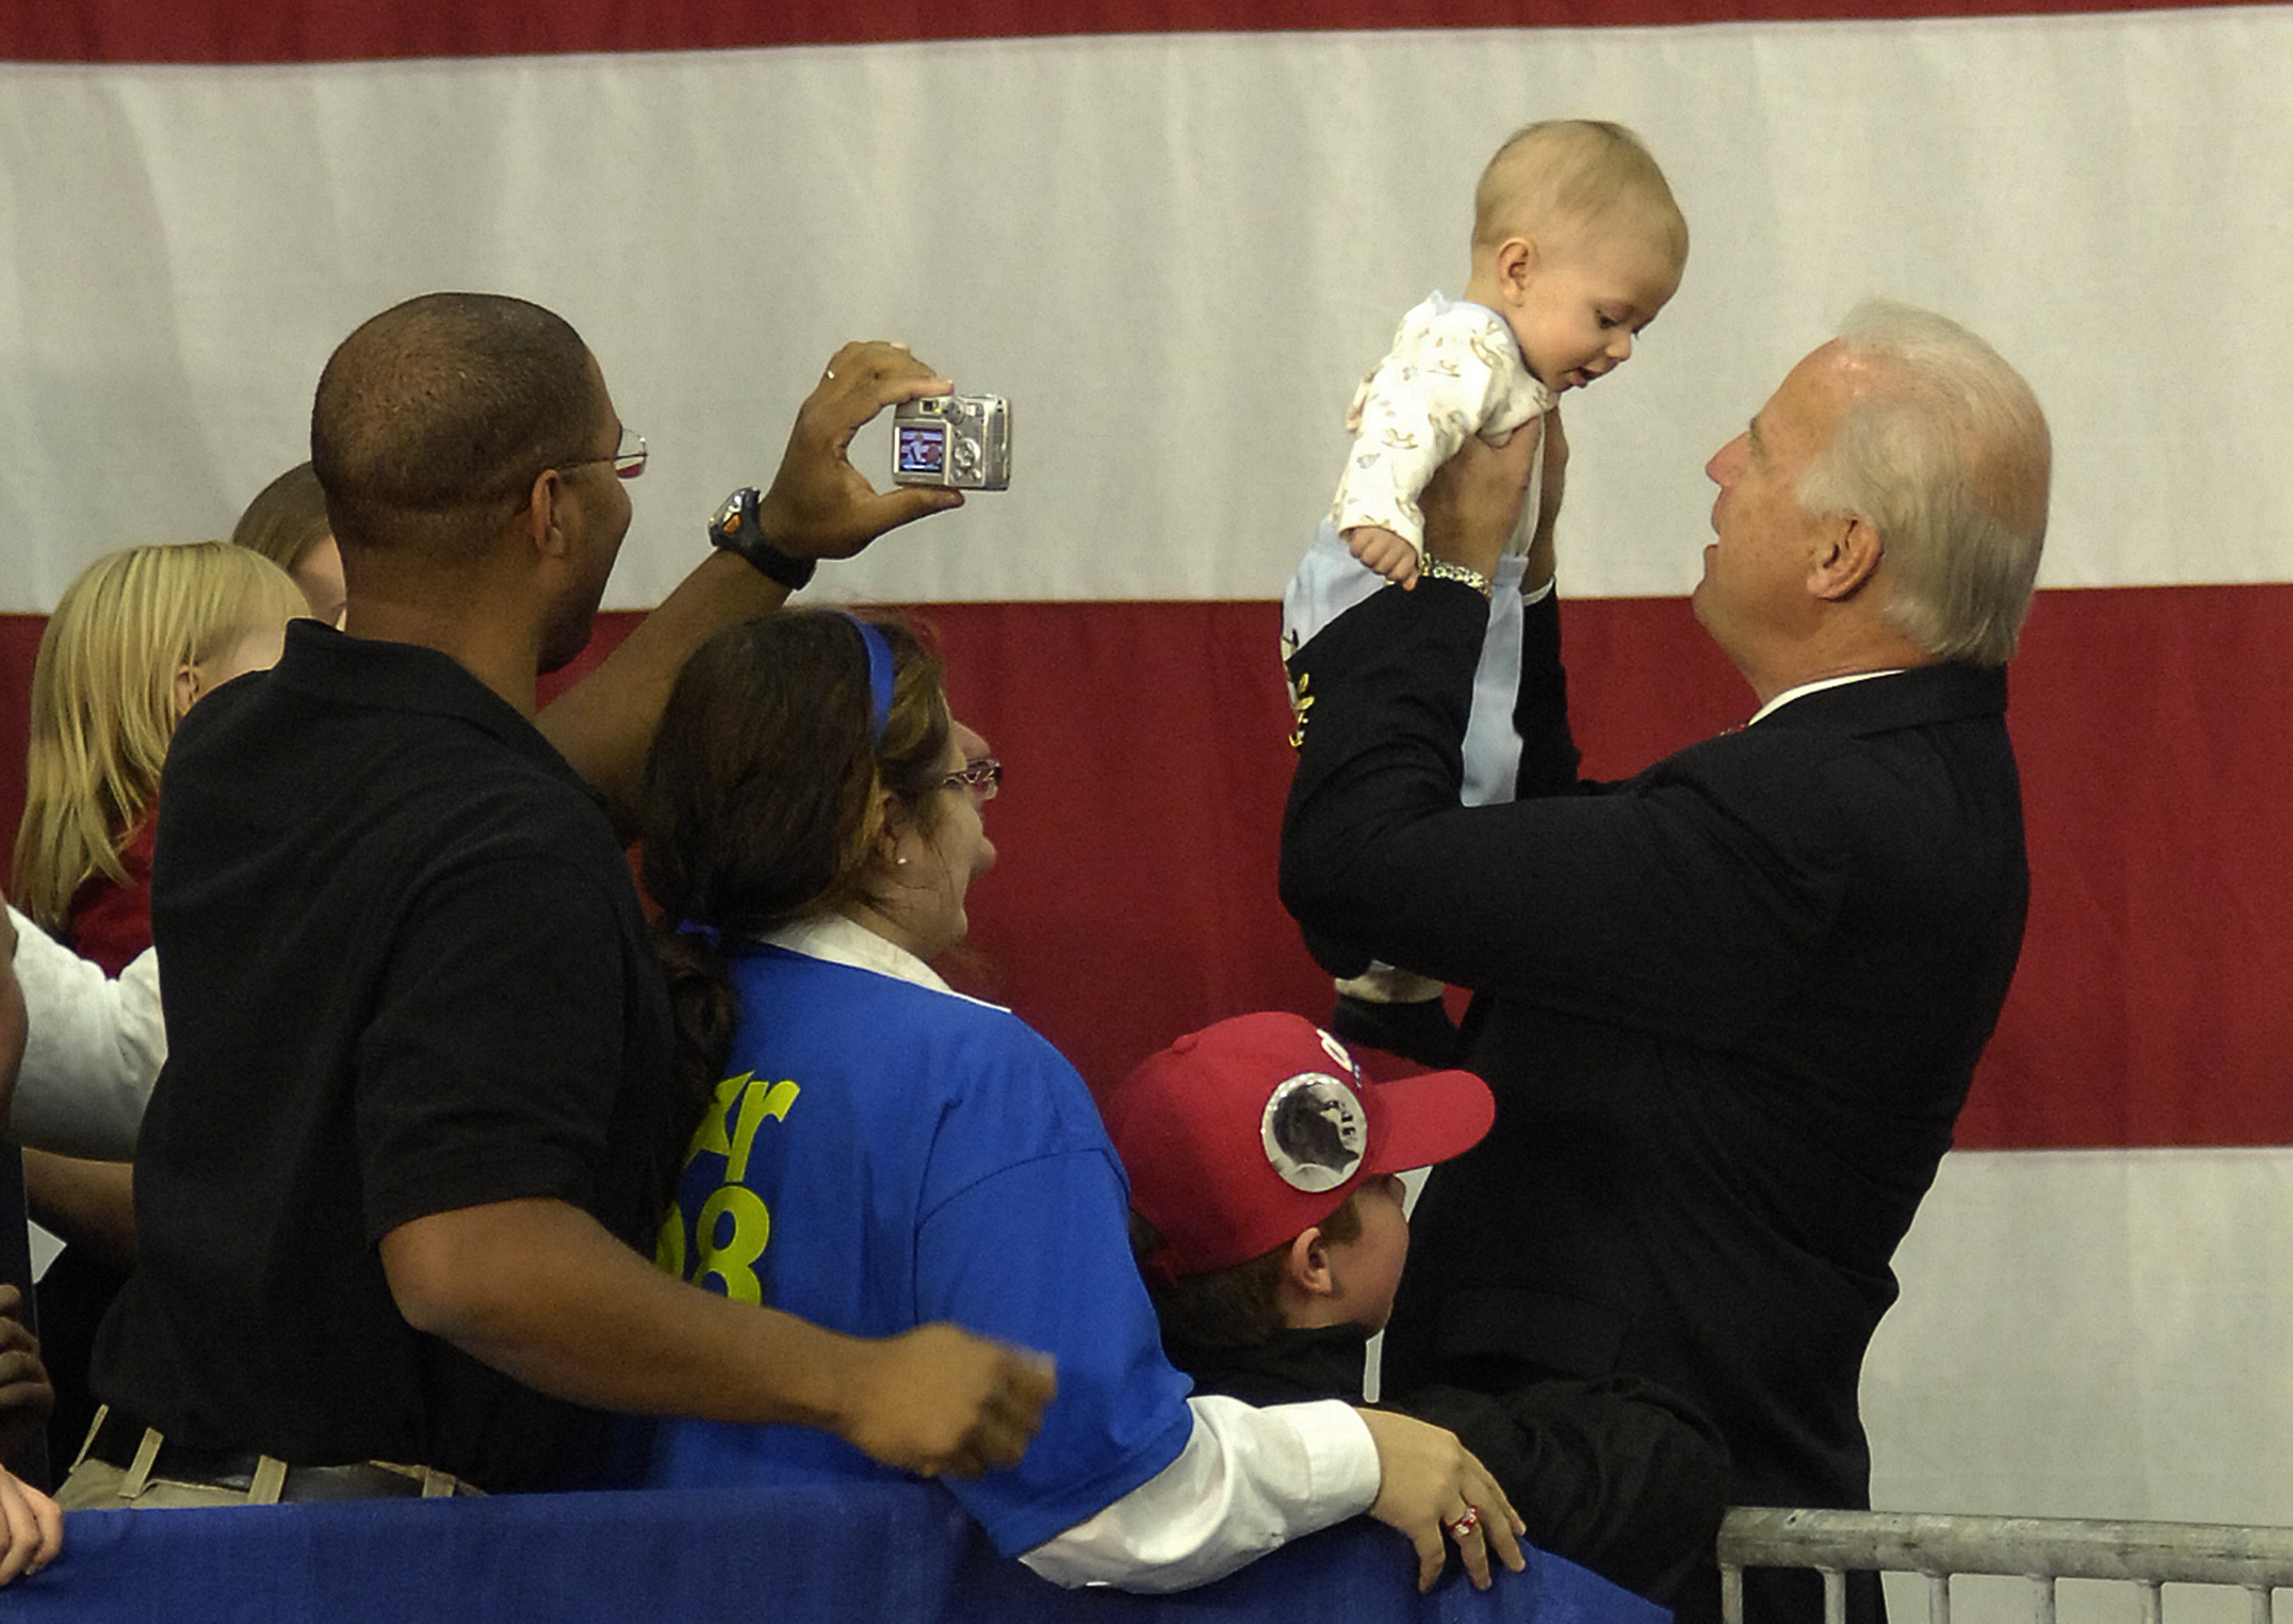 Joe Biden holds up a baby during a campaign rally in Williamsport, Pennsylvania, in October 2008.